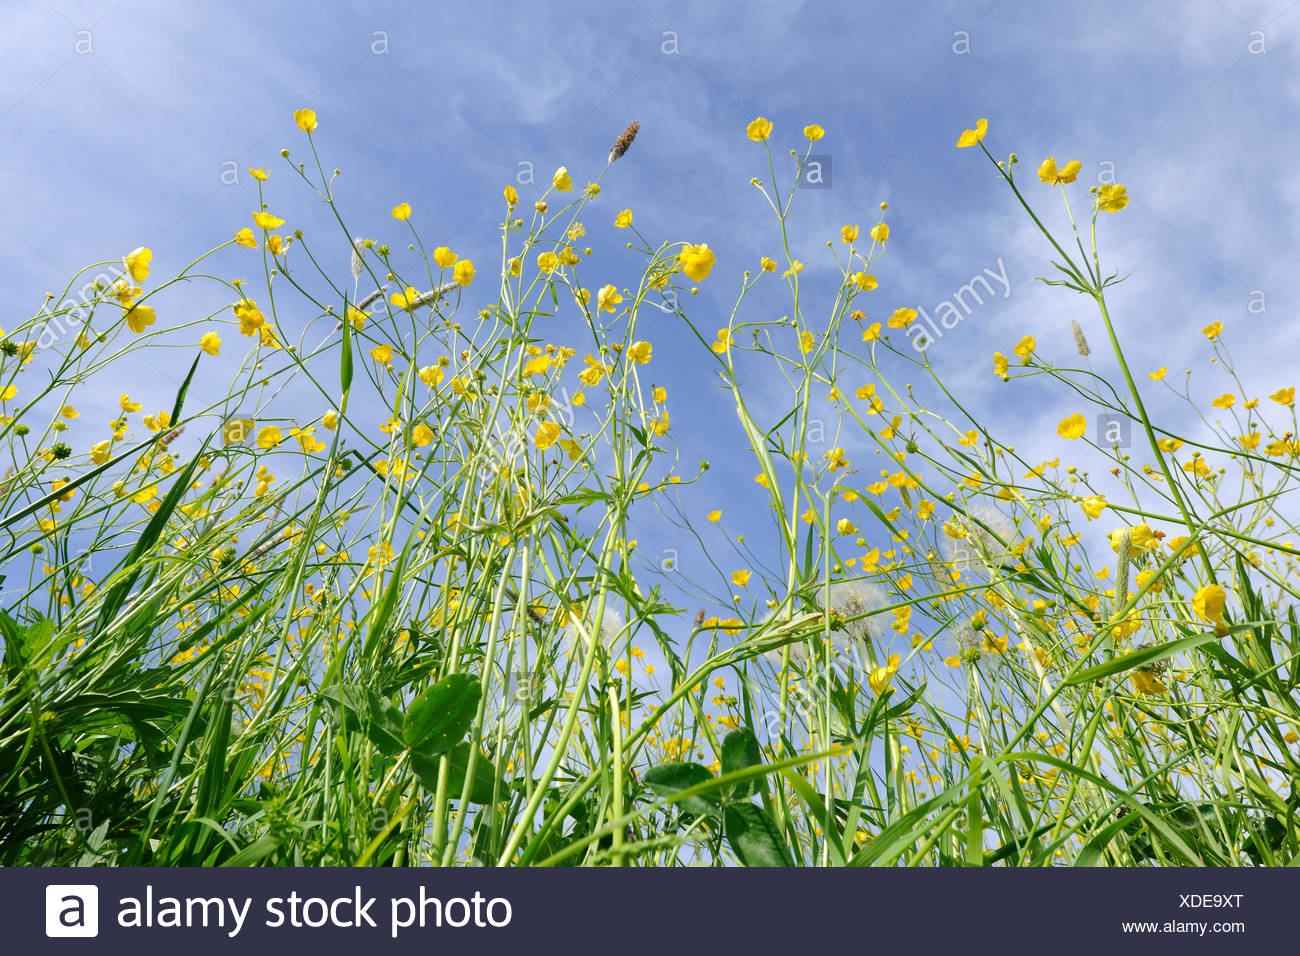 Meadow Buttercups, Tall Buttercups or Giant Buttercups (Ranunculus acris), in flower against a blue sky, Thuringia, Germany - Stock Image